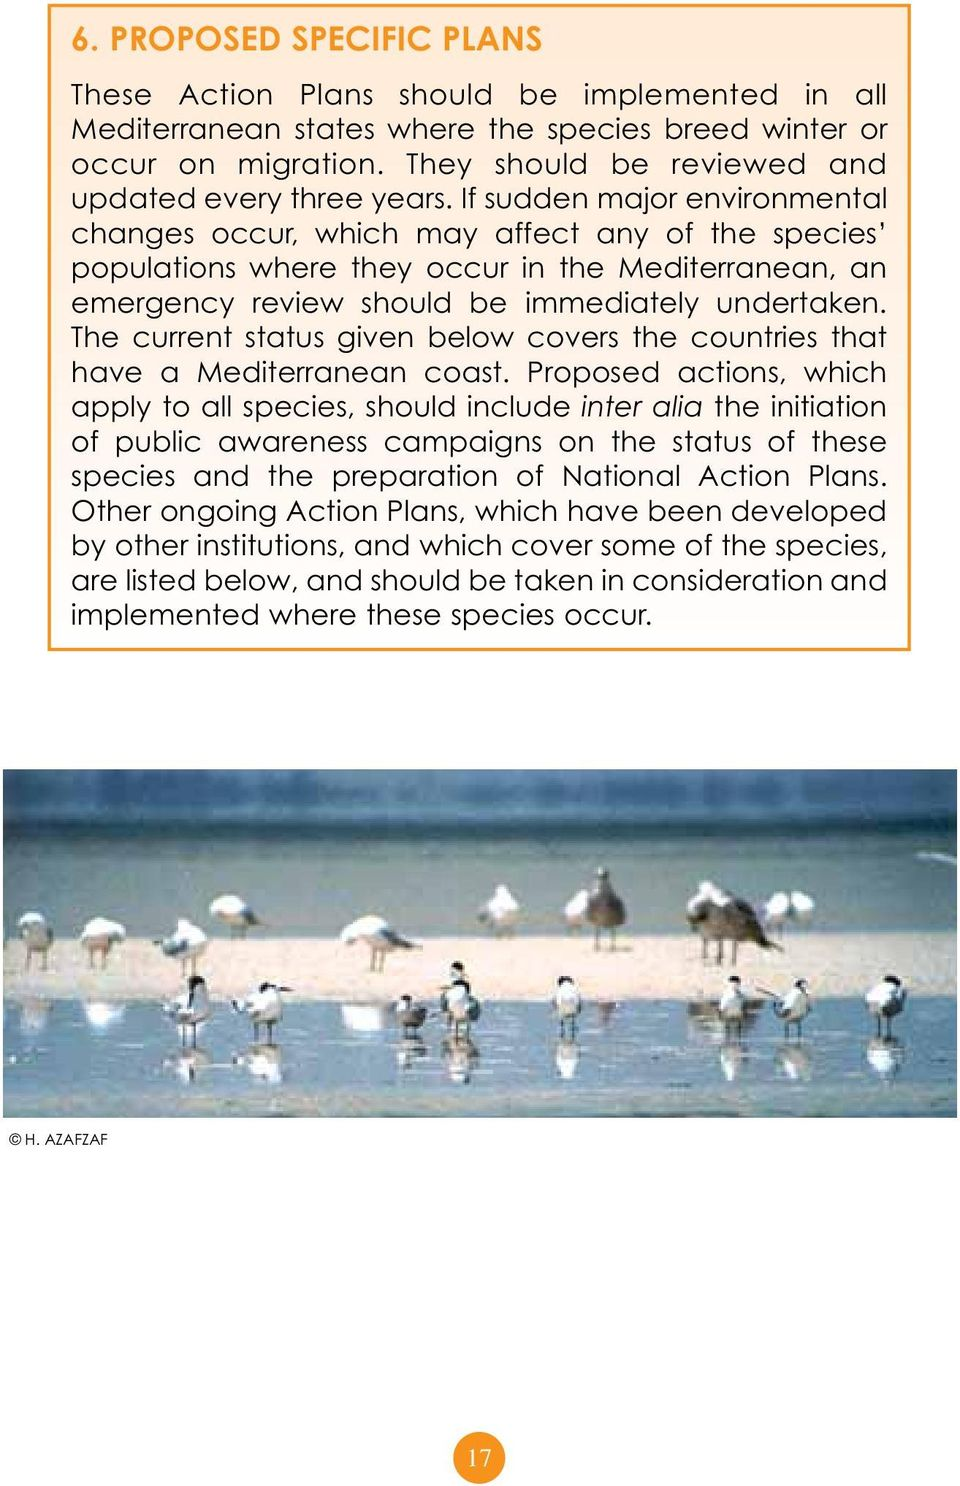 If sudden major environmental changes occur, which may affect any of the species populations where they occur in the Mediterranean, an emergency review should be immediately undertaken.